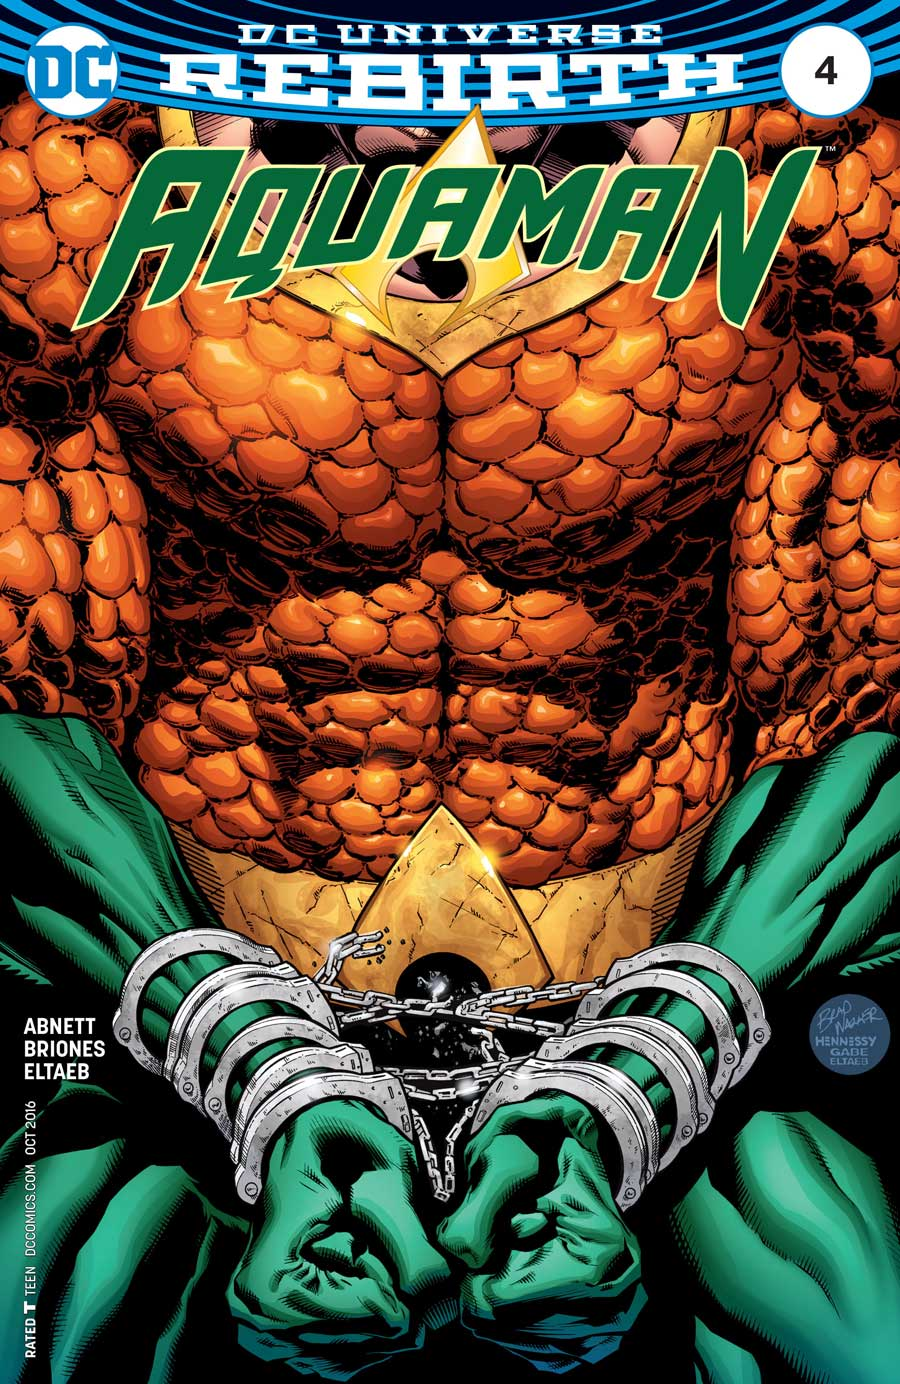 Aquaman #4 by Dan Abnett and Philippe Briones